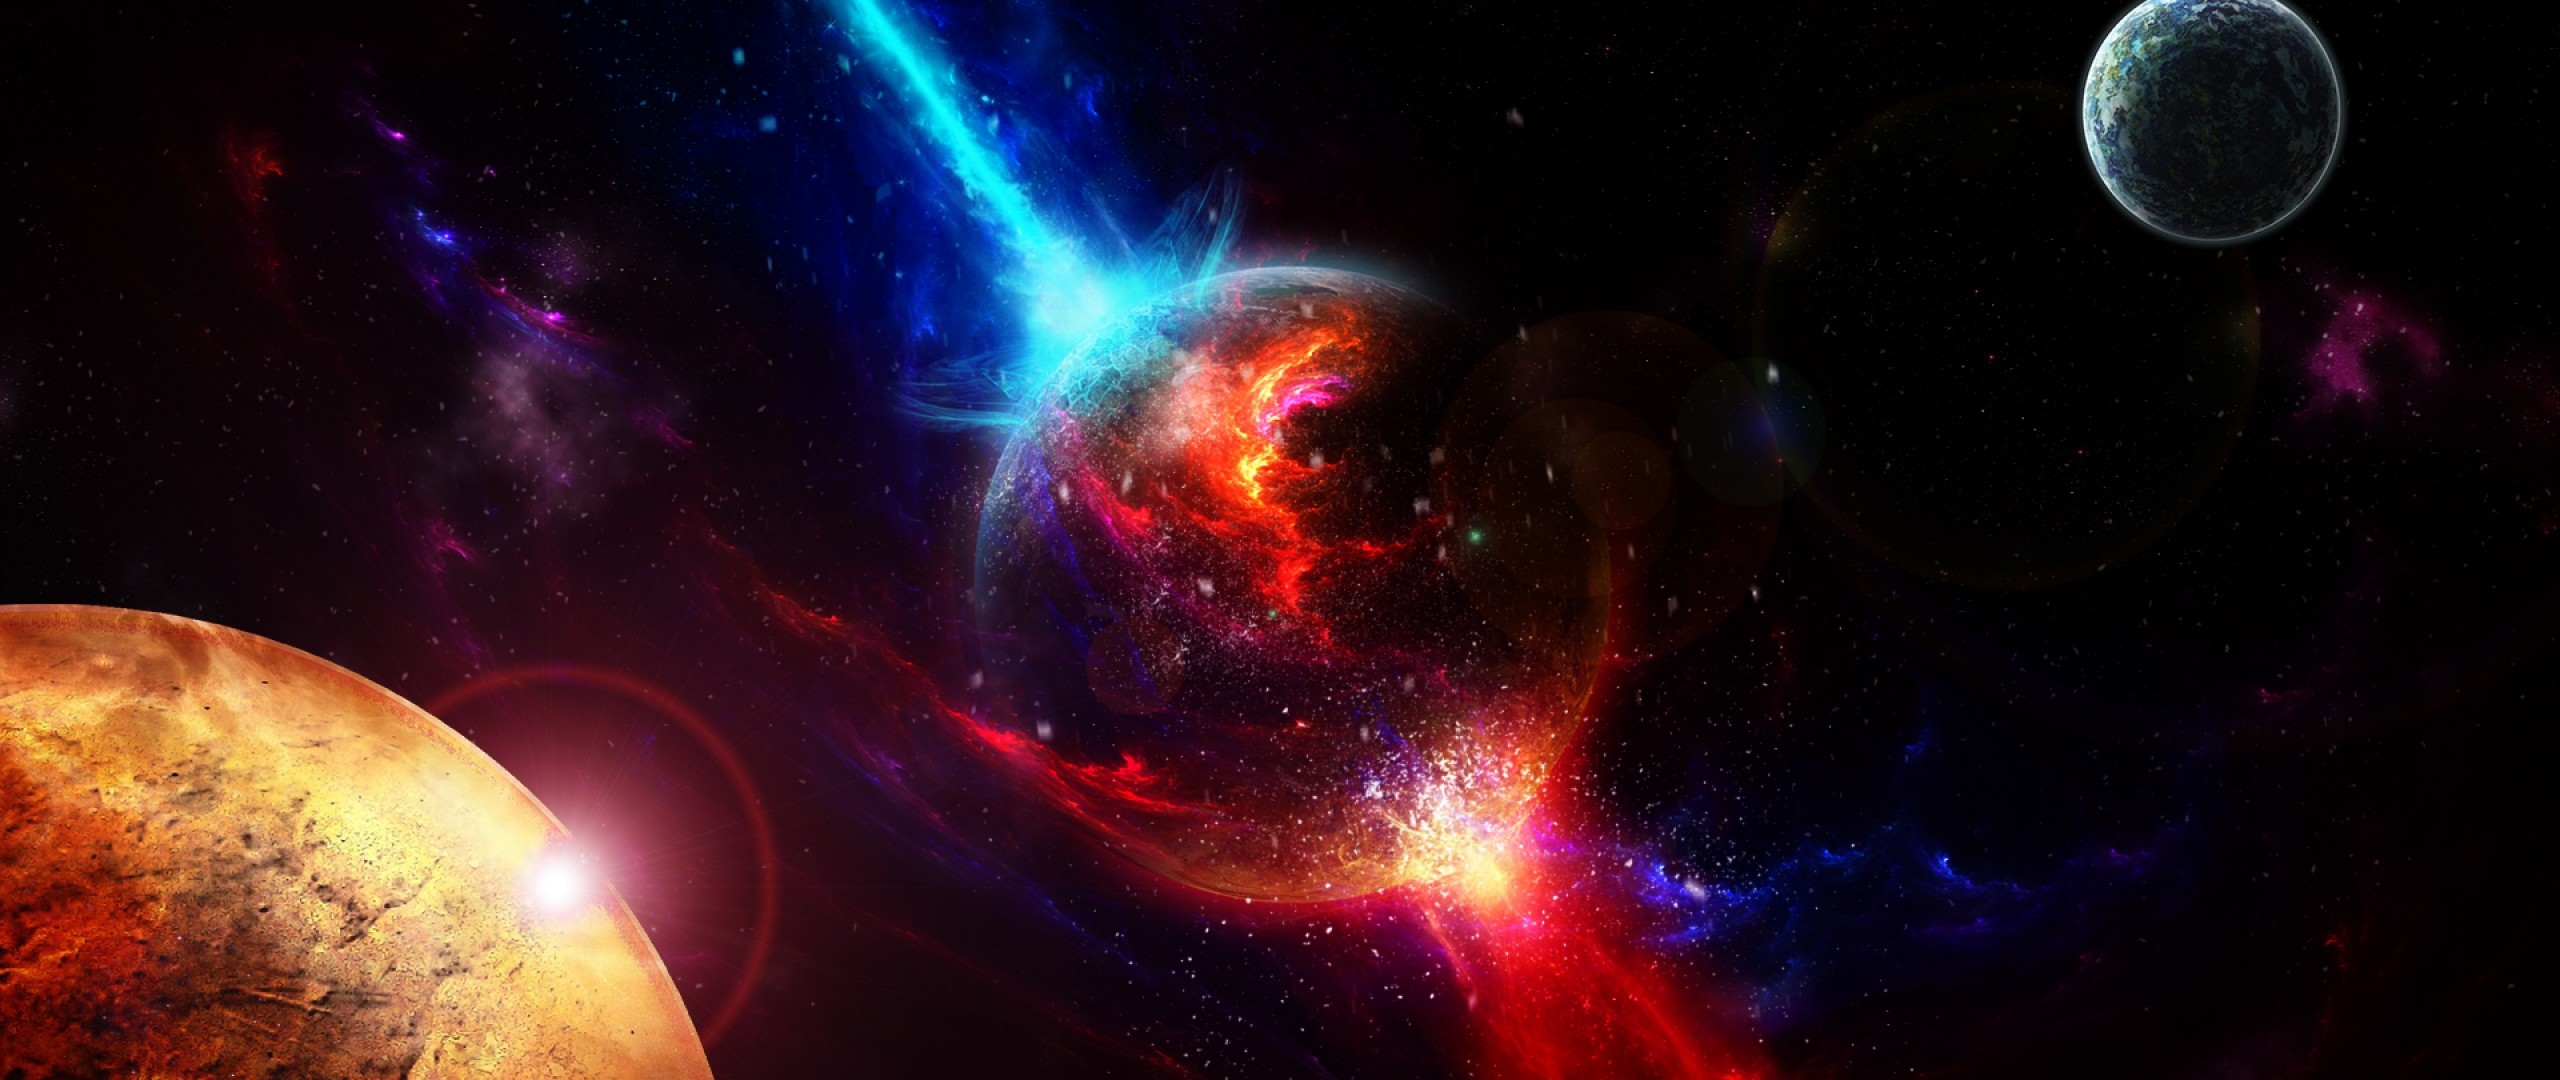 Wallpaper space, planets, takeoff, explosion